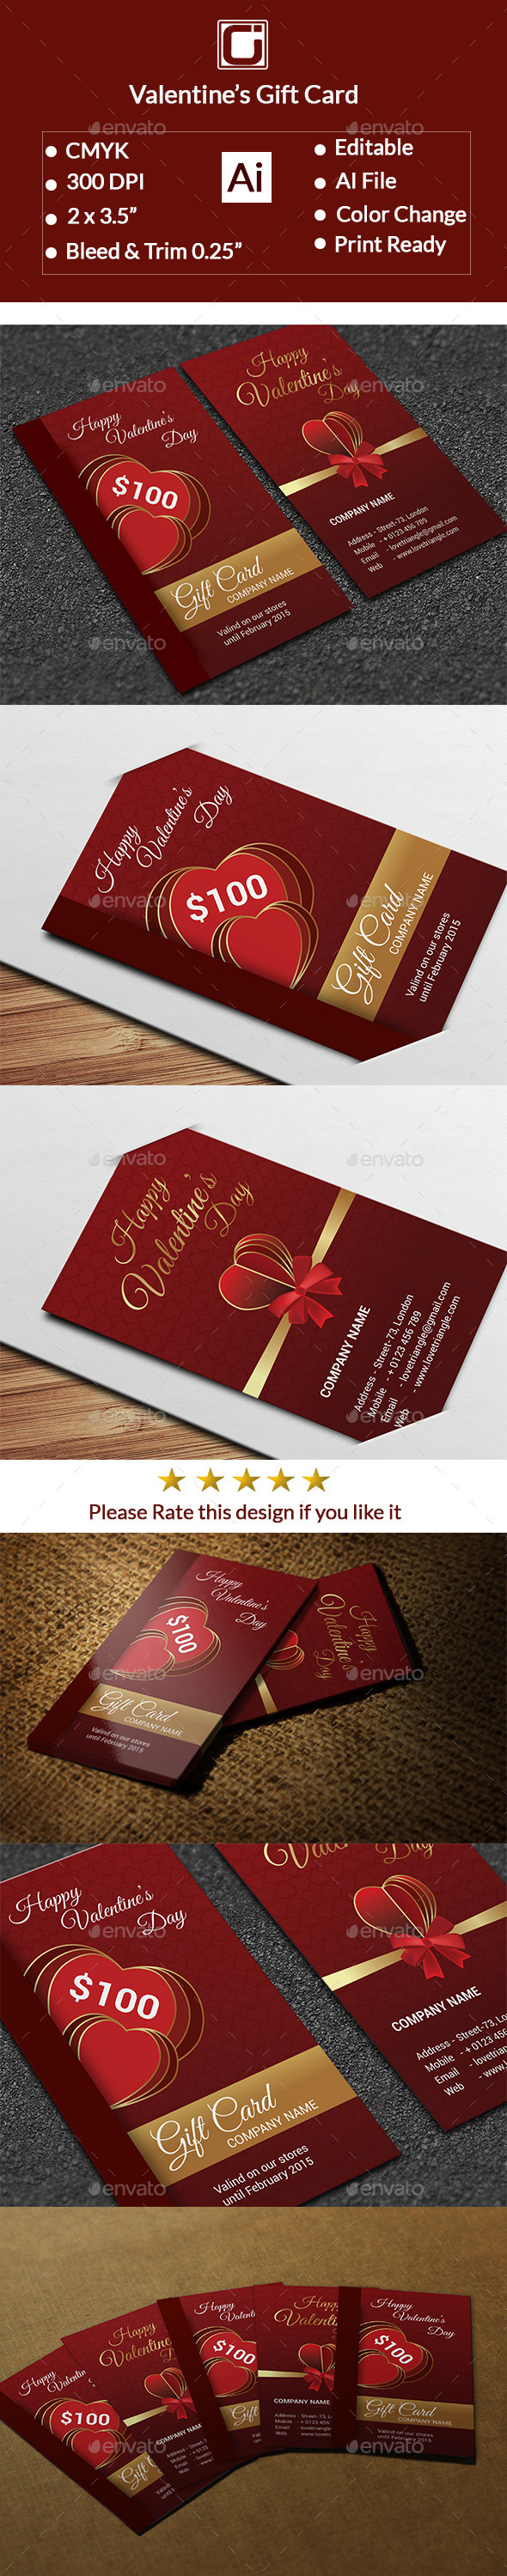 Valentine's Gift Card - Cards & Invites Print Templates